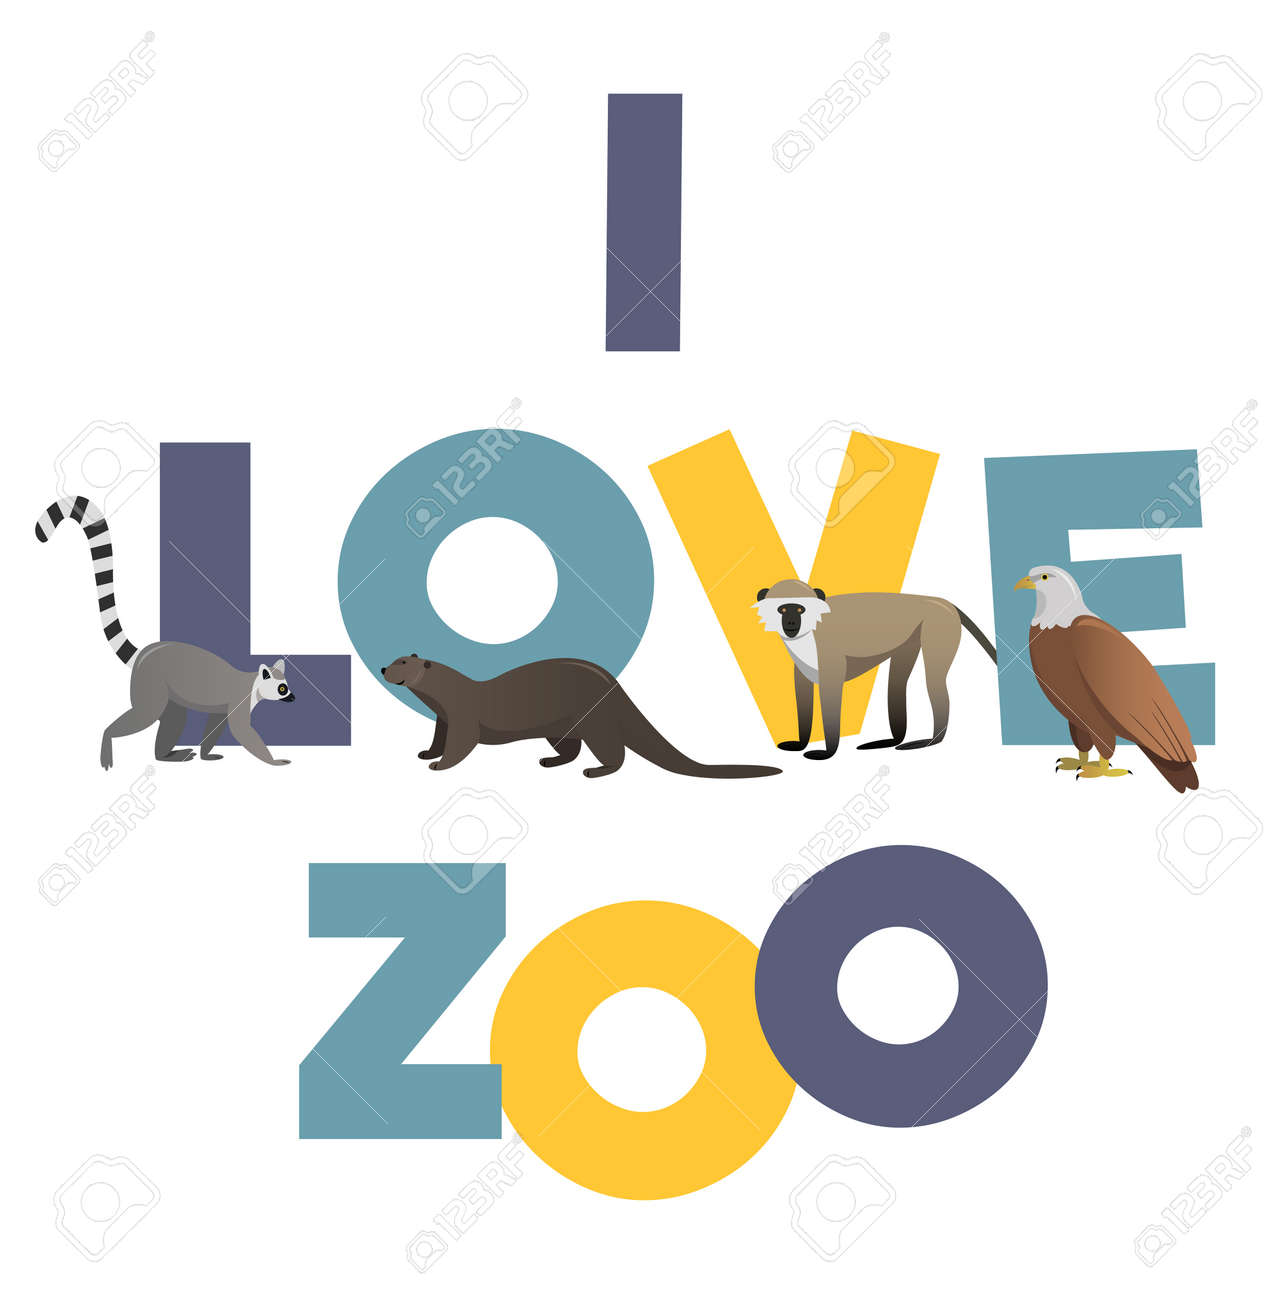 Zoo poster design - I Love Zoo Vector Poster With Animals Images For Any Kind Design Stock Vector